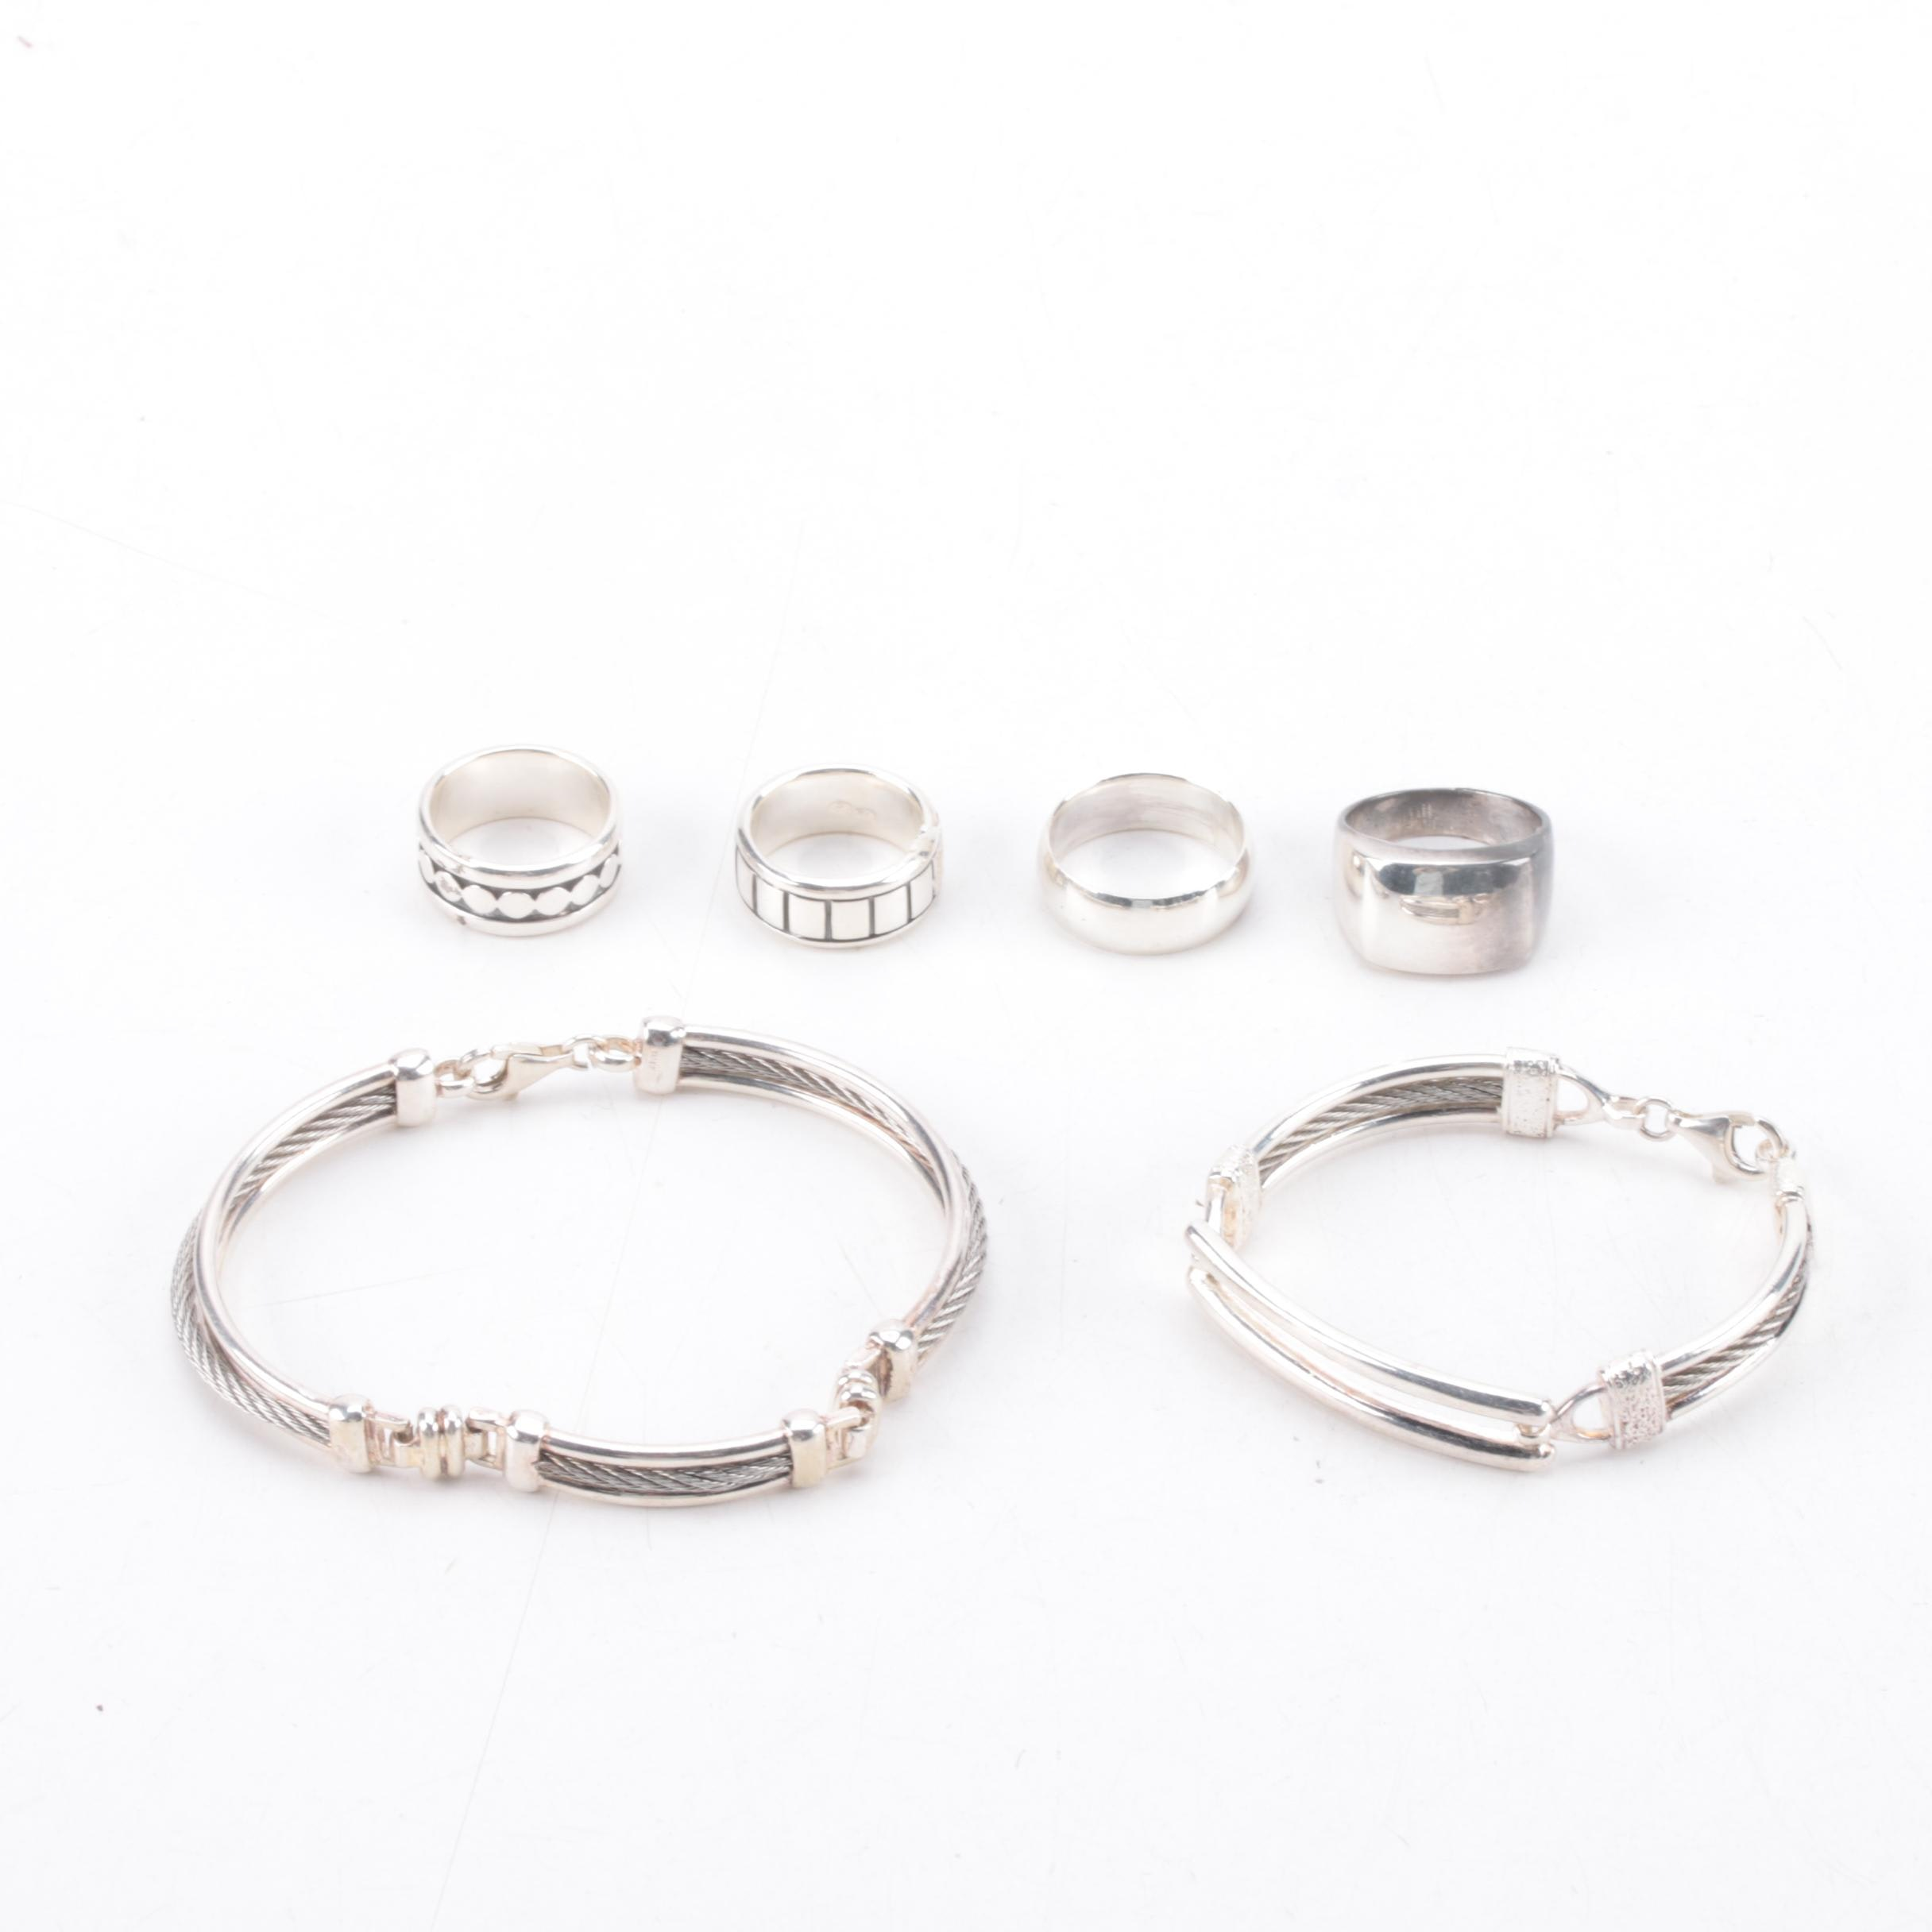 Sterling Silver Ring and Bracelet Selection